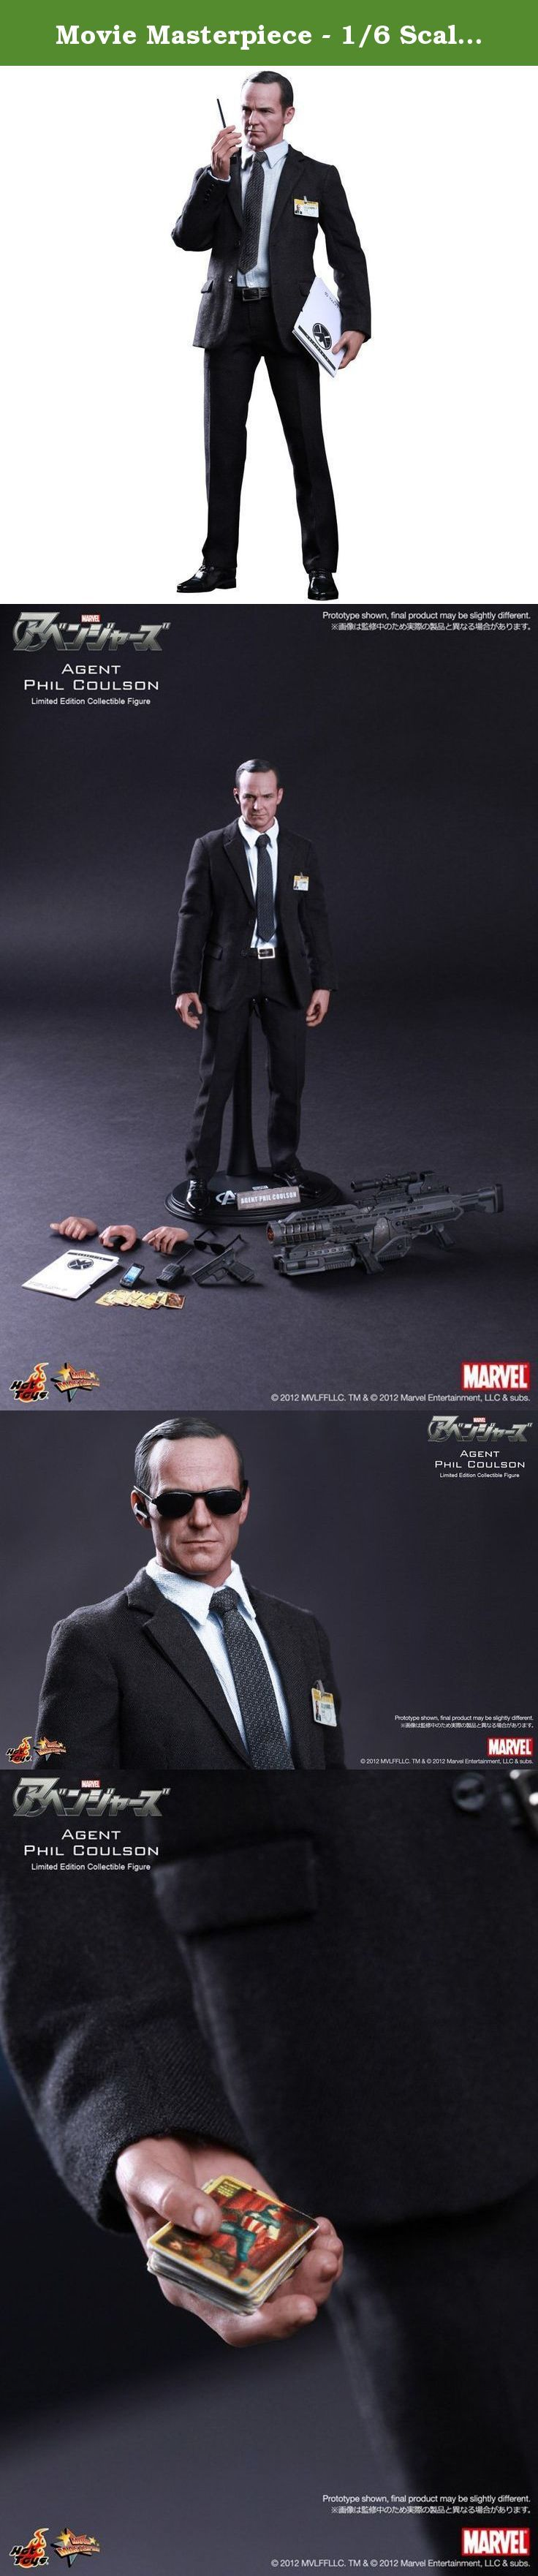 Movie Masterpiece - 1/6 Scale Fully Poseable Figure: The Avengers - Agent Phil Coulson. Sideshow Collectibles and Hot Toys are proud to present the Agent Phil Coulson Limited Edition Sixth Scale Collectible Figure from the smash hit The Avengers. The movie-accurate collectible is specially crafted based on the image of Clark Gregg as Agent Phil Coulson in the movie, highlighting the newly developed head sculpt, highly detailed costume, weapons and accessories.The Agent Phil Coulson Sixth...